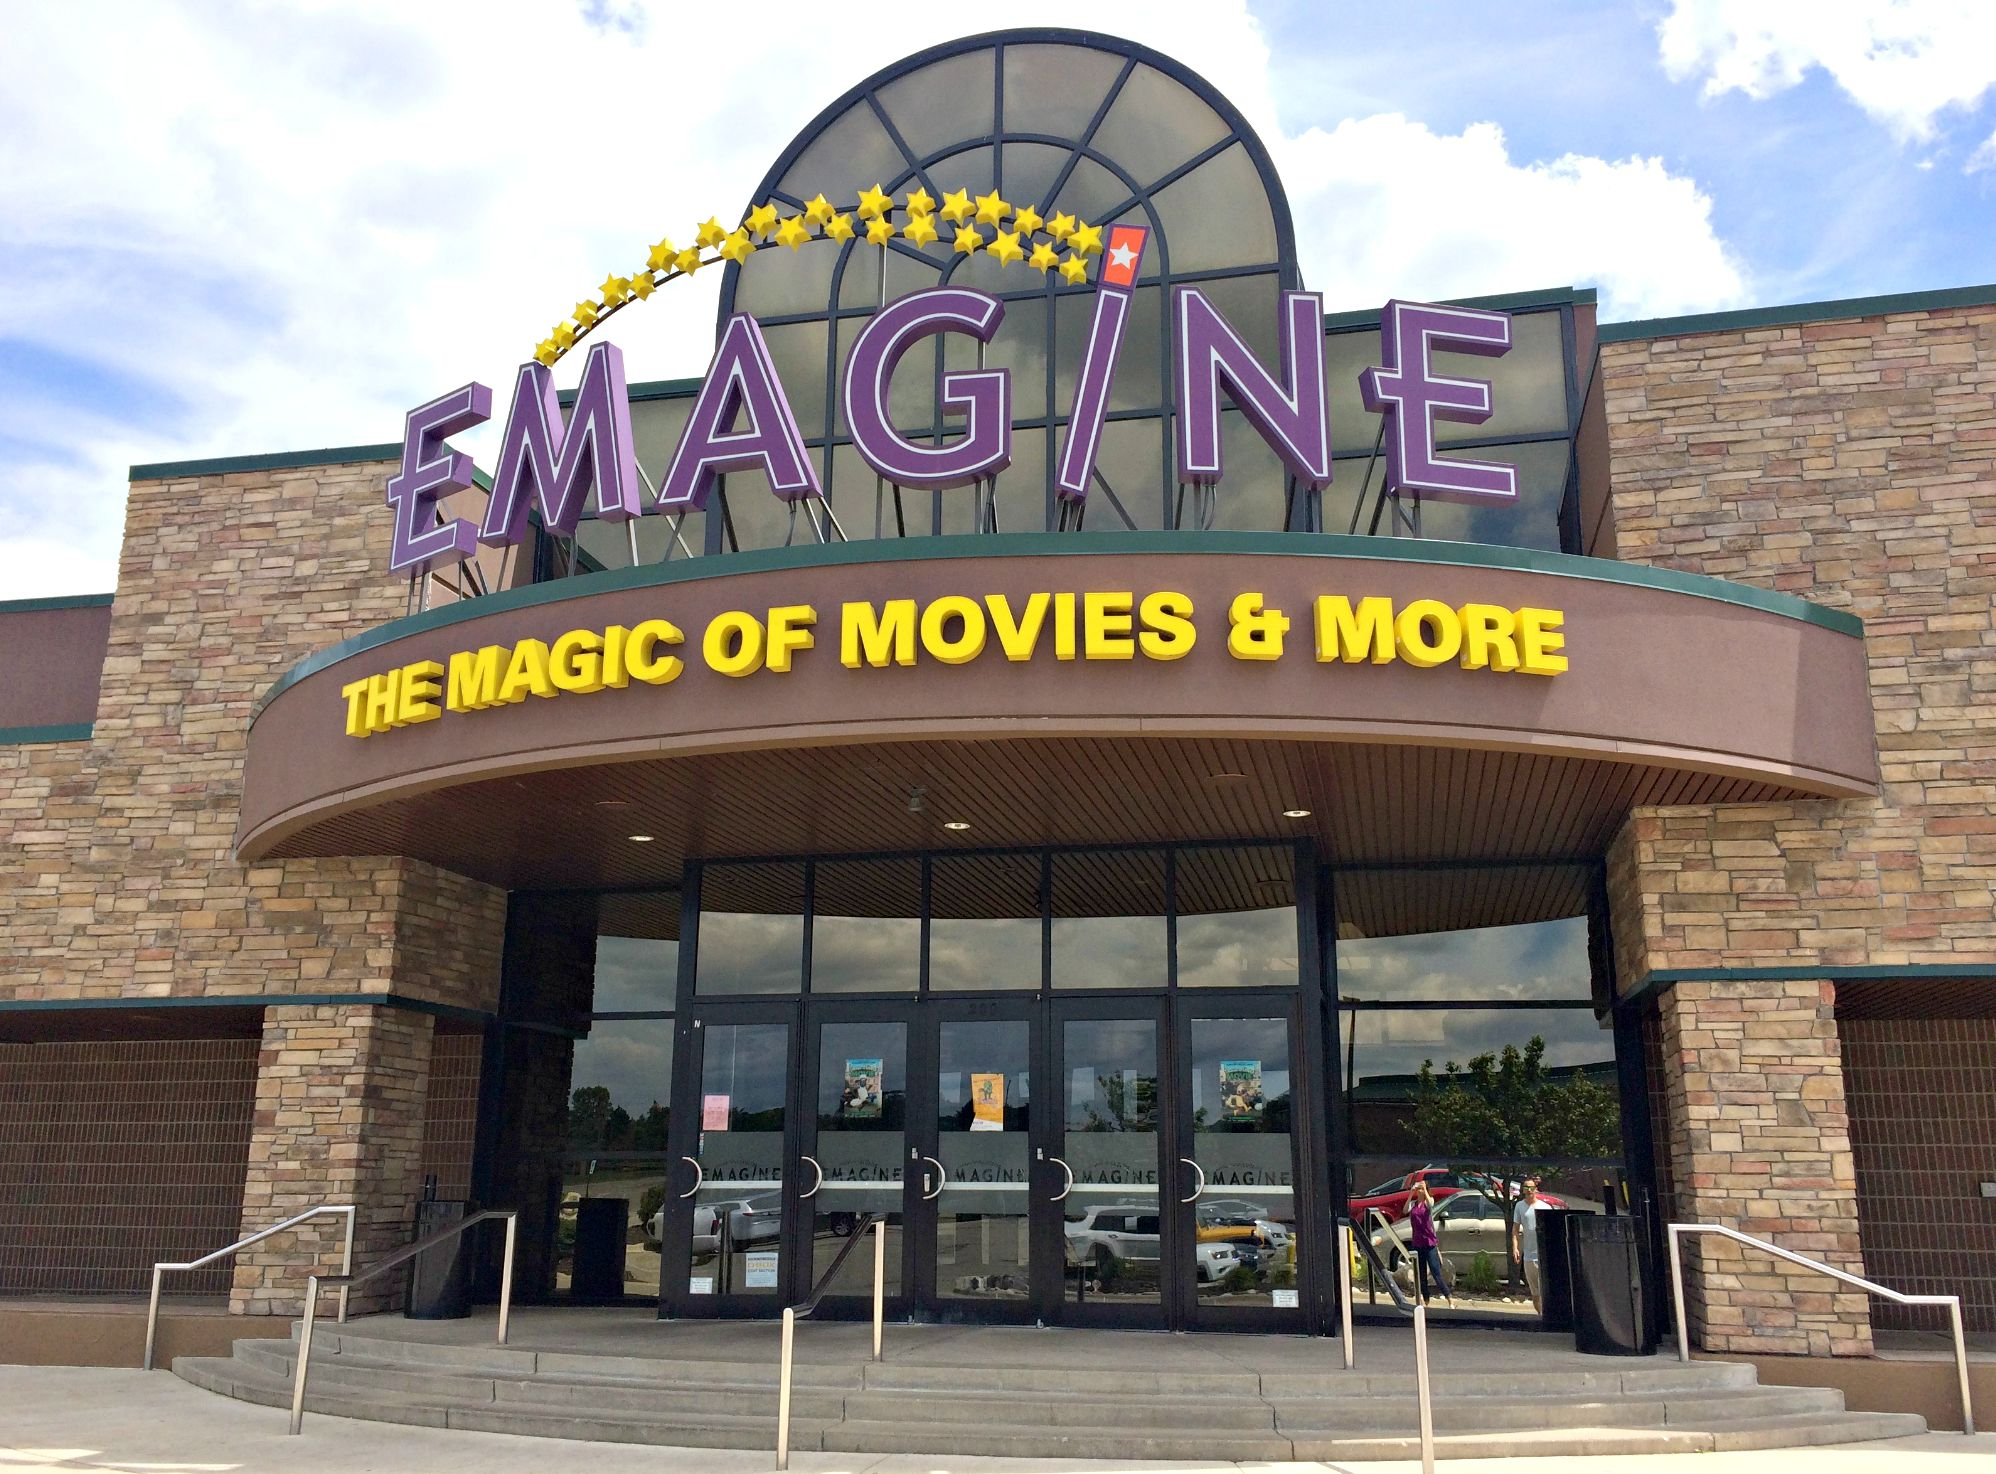 Emagine movie theater